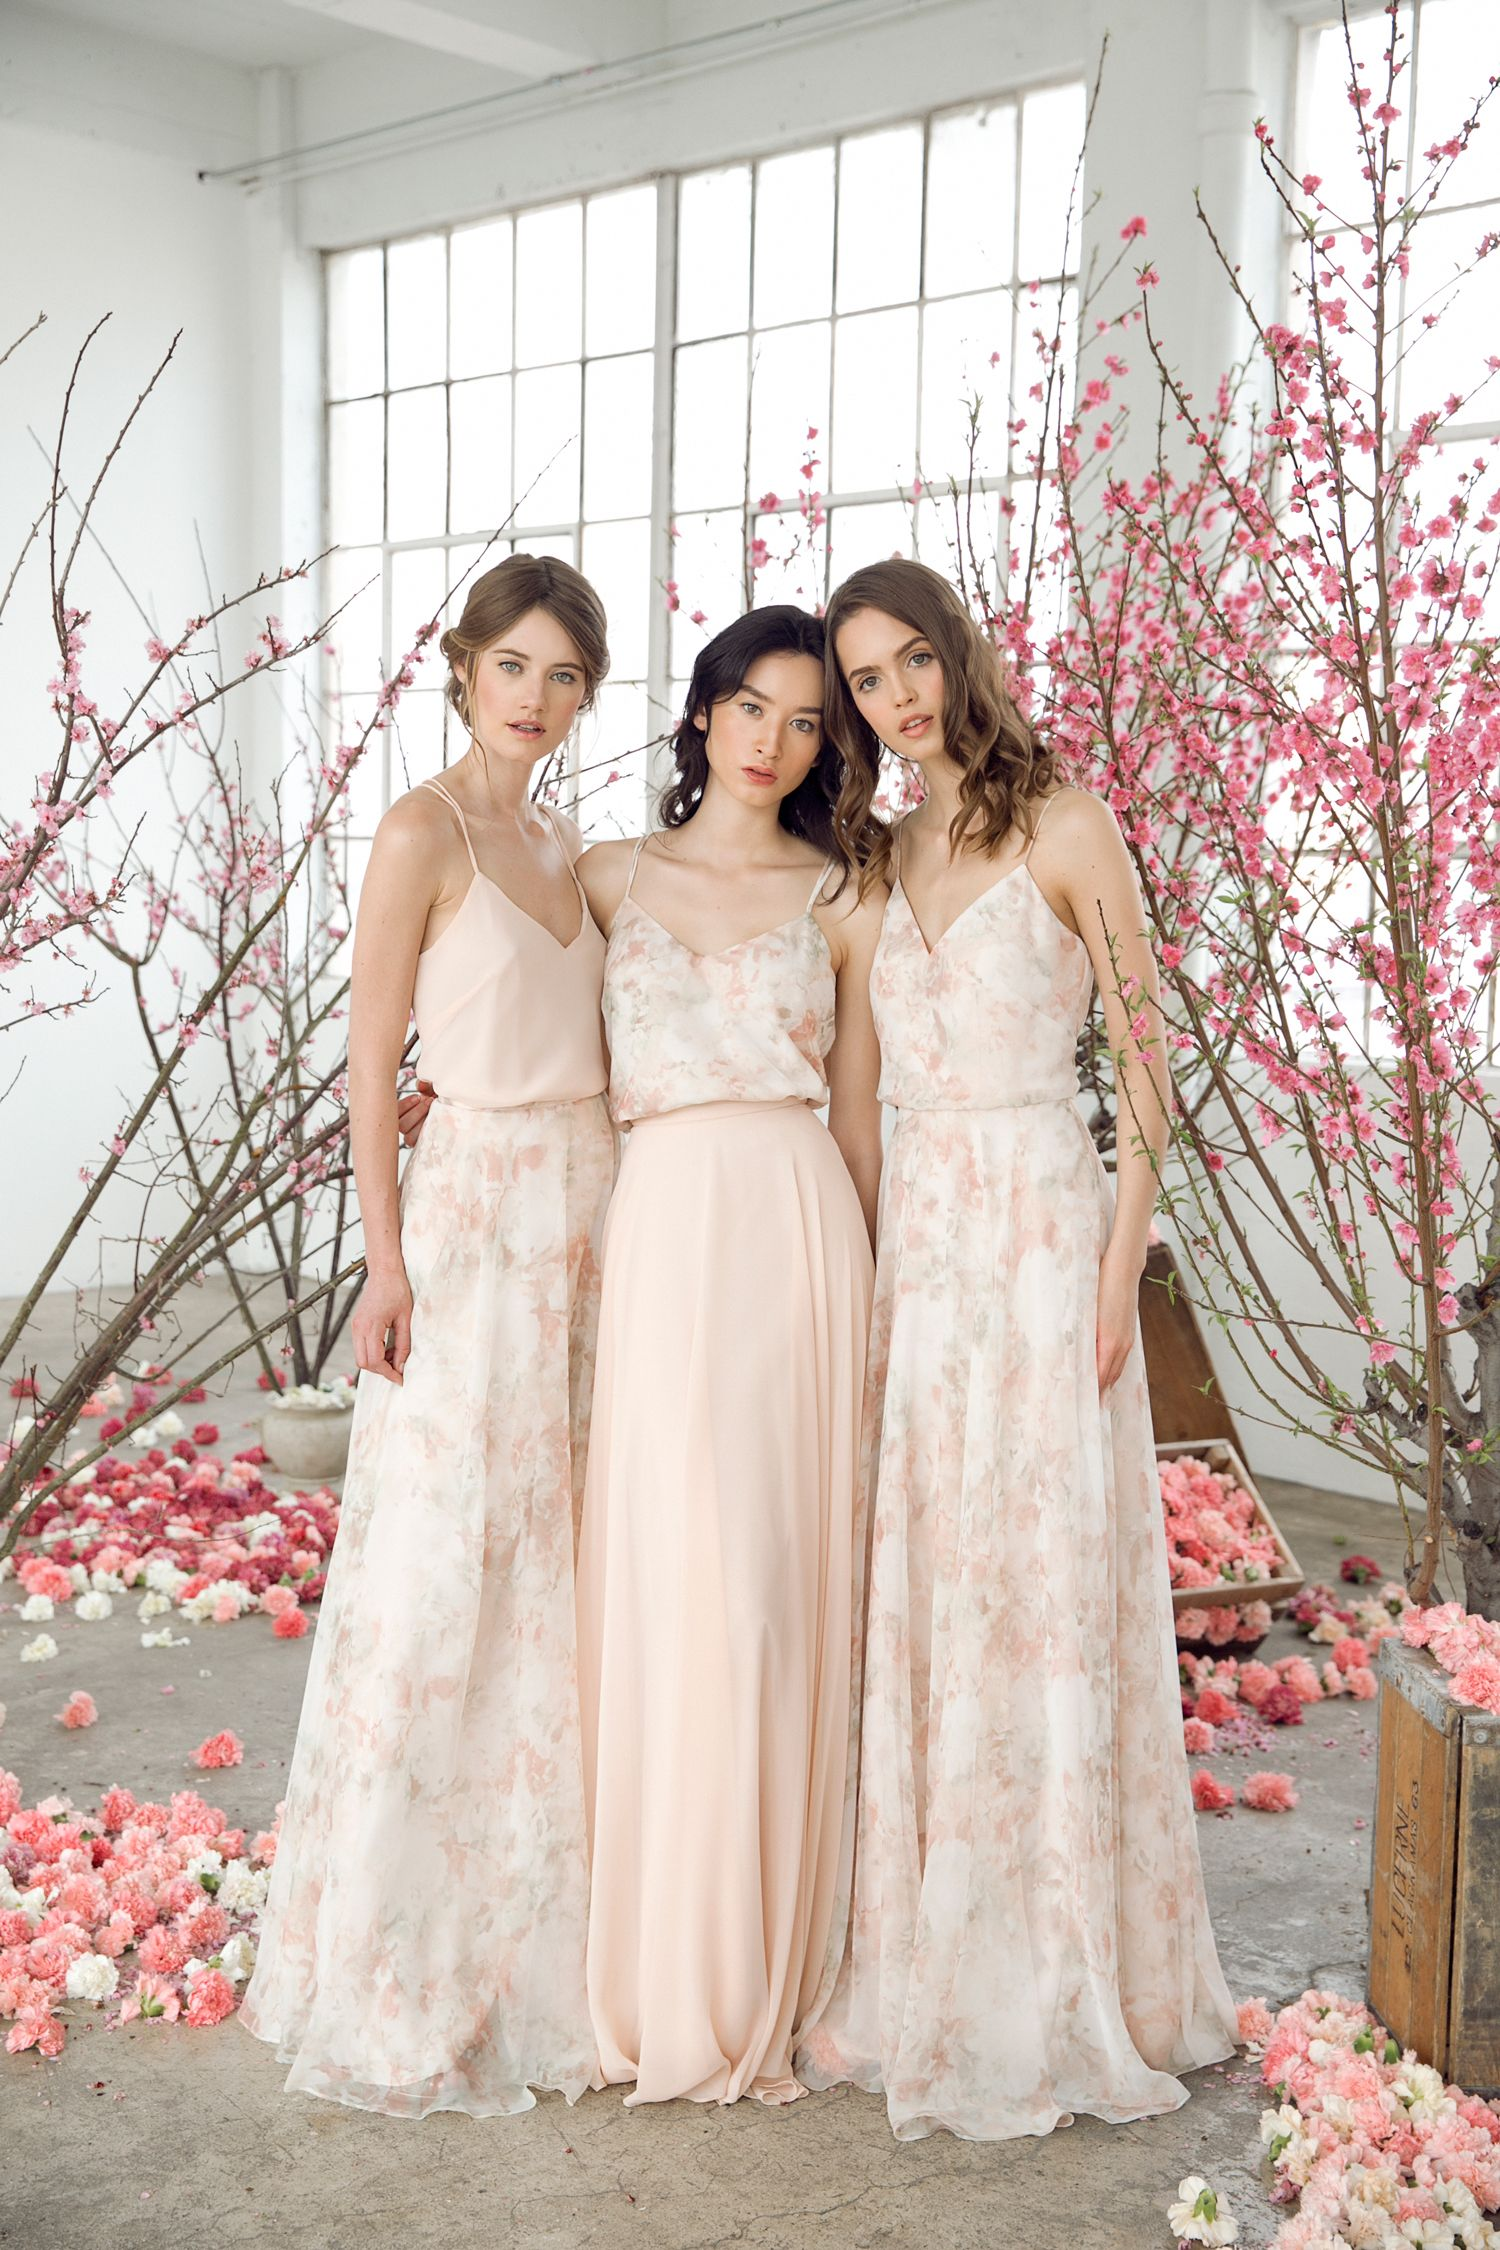 Mix match blush and floral bridesmaid dresses and separates by mix match blush and floral bridesmaid dresses and separates by jenny yoo ombrellifo Gallery